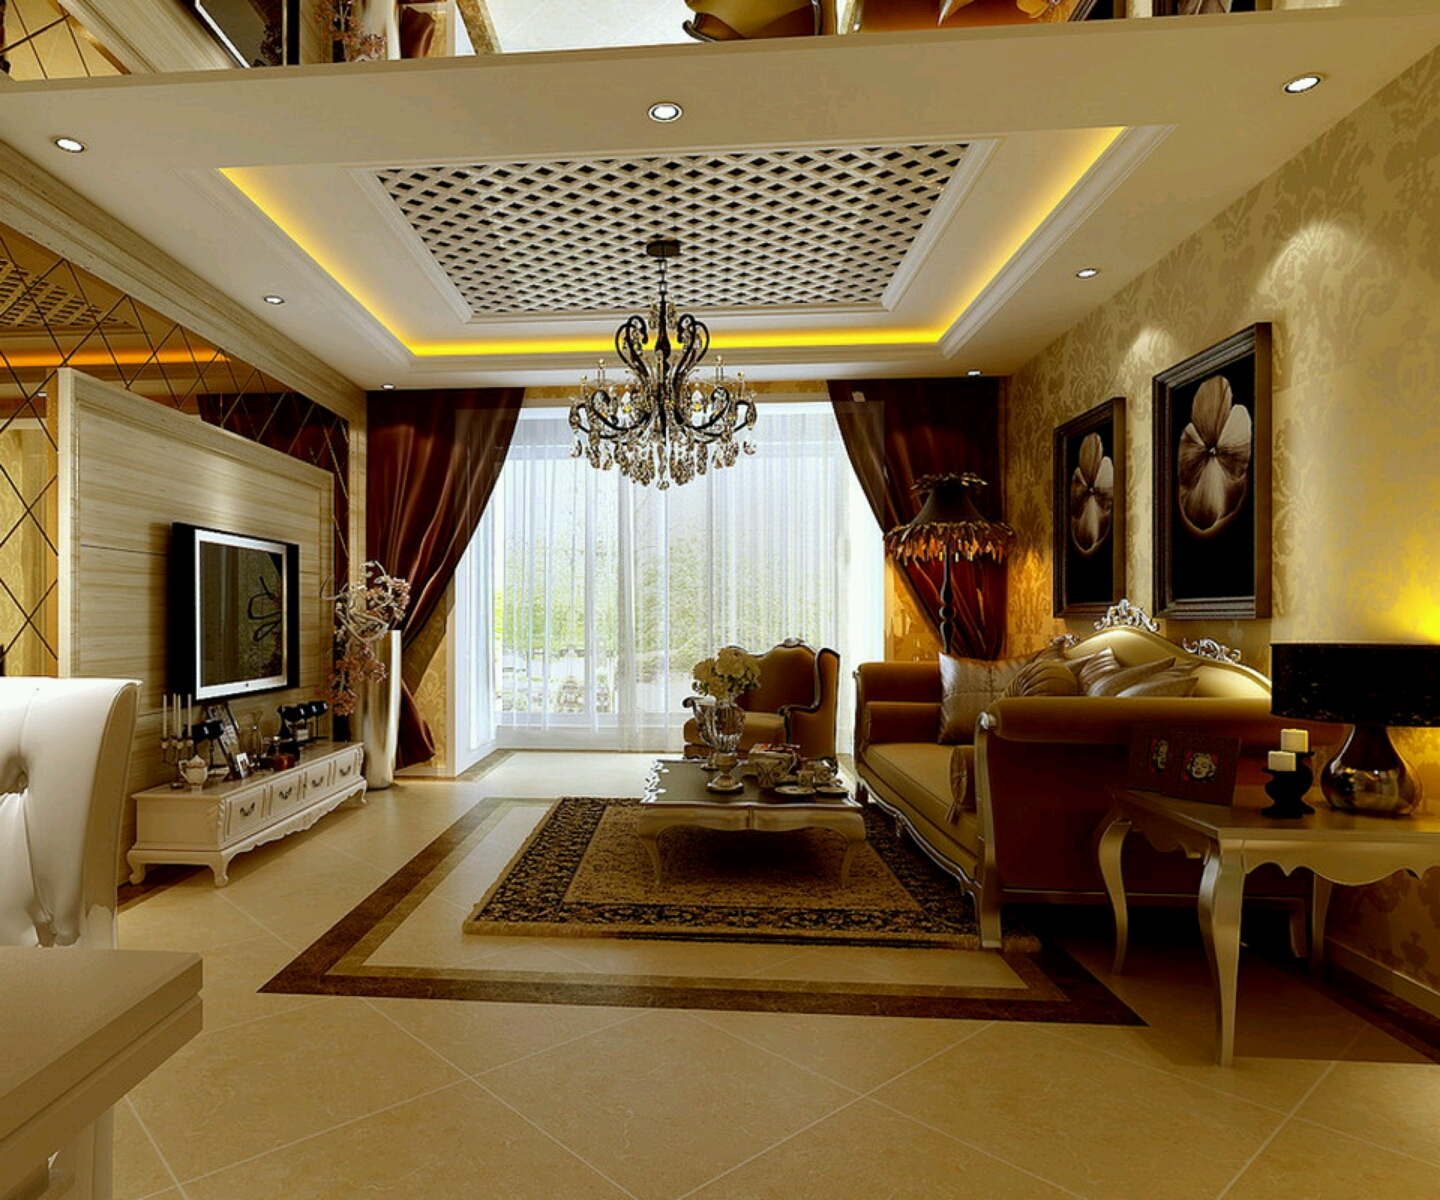 New home designs latest luxury homes interior decoration for Deco interior design